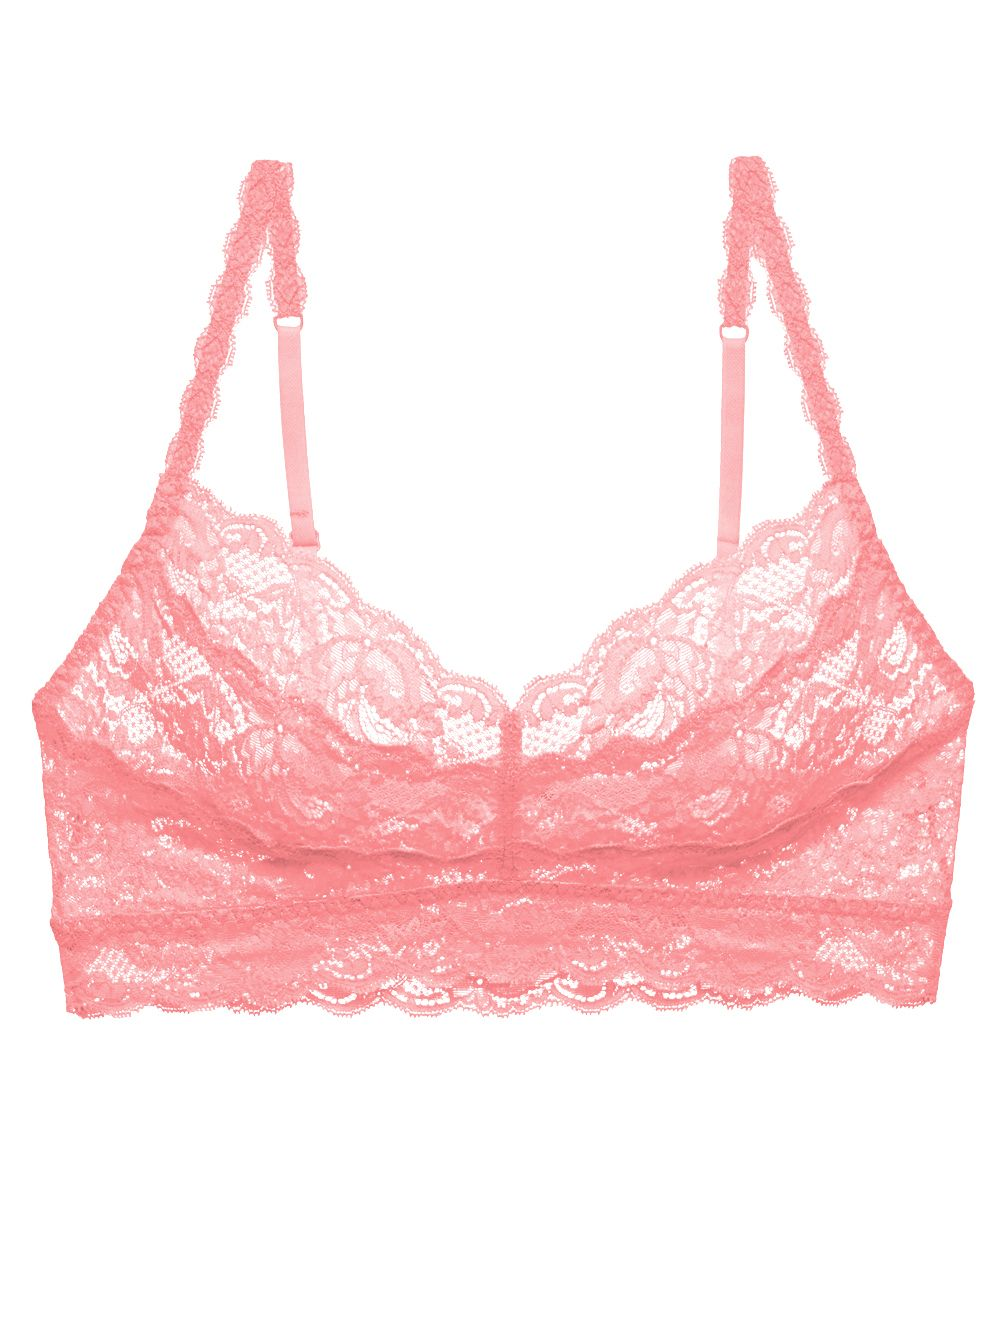 COSABELLA - Never Say Never Sweetie Bralette